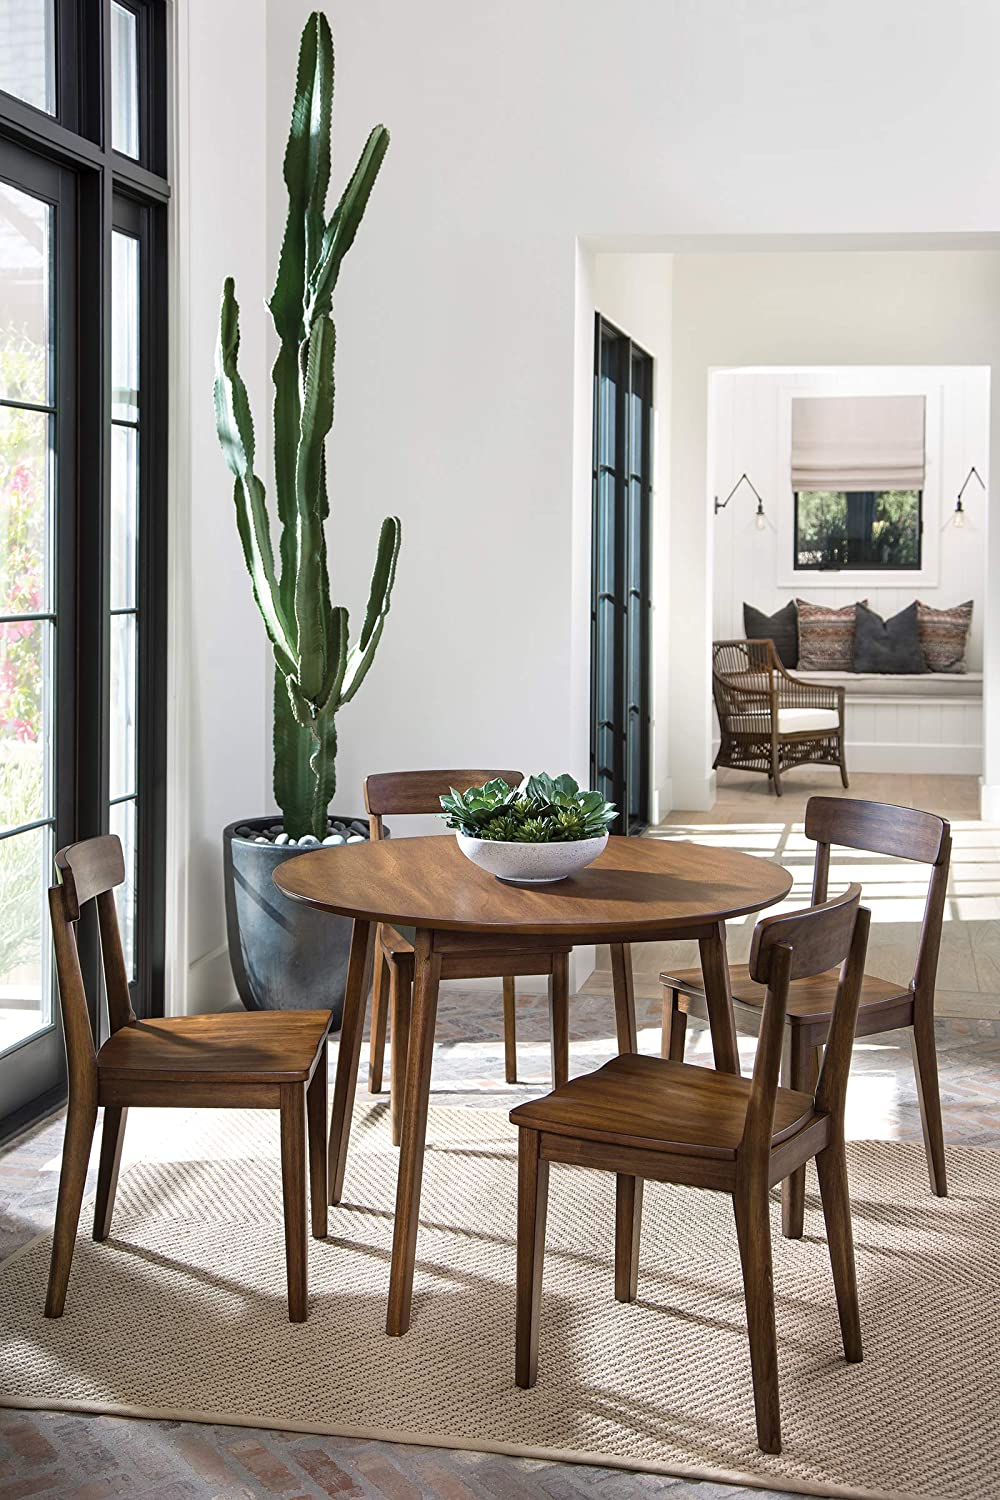 OSP Home Furnishings Chesterfield Super Special Max 46% OFF SALE held Dining 5-Piece Set Walnut